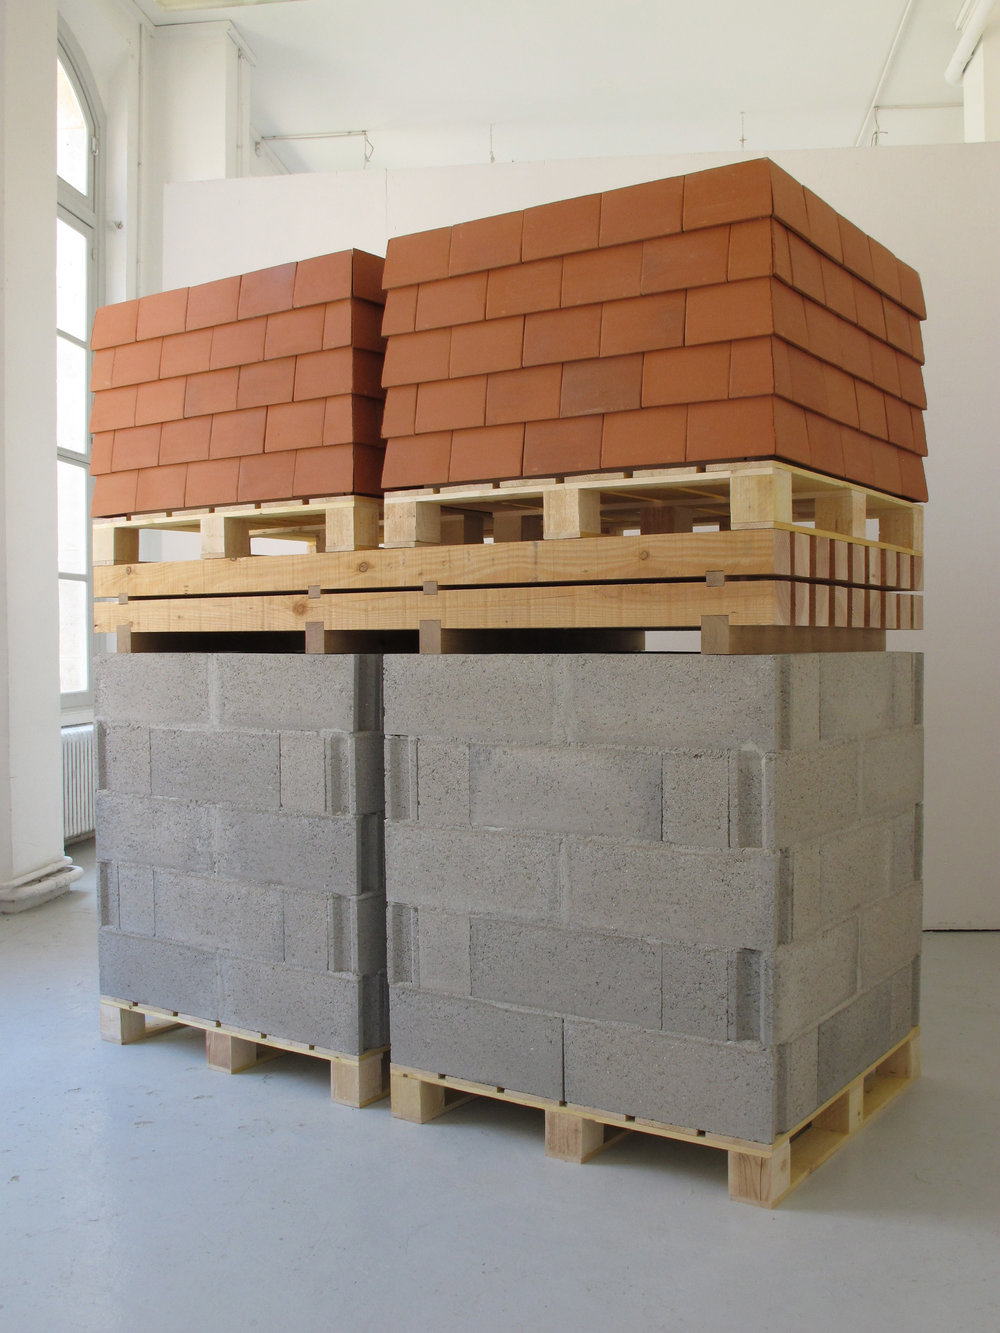 La Maison     2014, pallet, breeze blocks, mortar, rafters, tiles, 210x 210 x 100 cm    A minimal house. The materials that I chose are strictly necessary for habitat building. Here, the materials are presented in their storage condition, rack and pallet. Nevertheless, they experienced a mutation. The materials have anticipated their future, their conditioning doesn't consider their use.   La Maison   is achieved.     A house represents comfort, refuge, protection. Here it is massive, compressed and impenetrable.